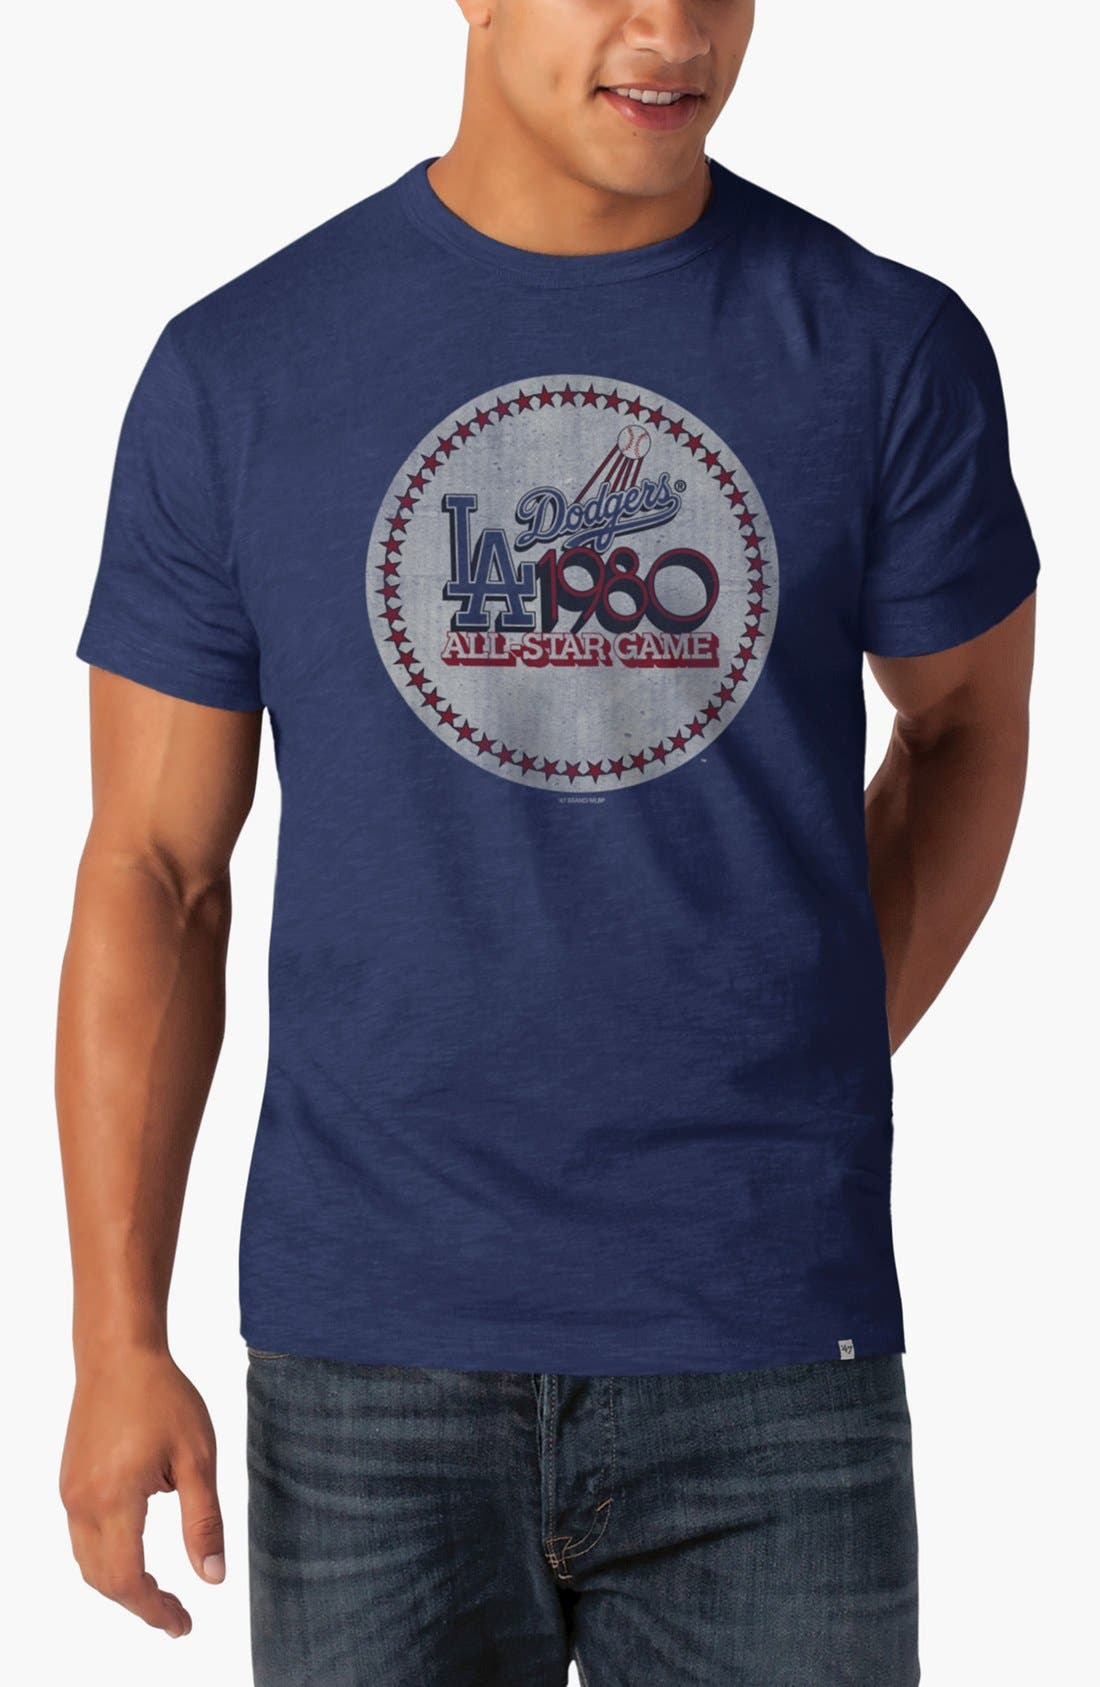 Main Image - 47 Brand 'Los Angeles Dodgers All Star Game' Graphic T-Shirt